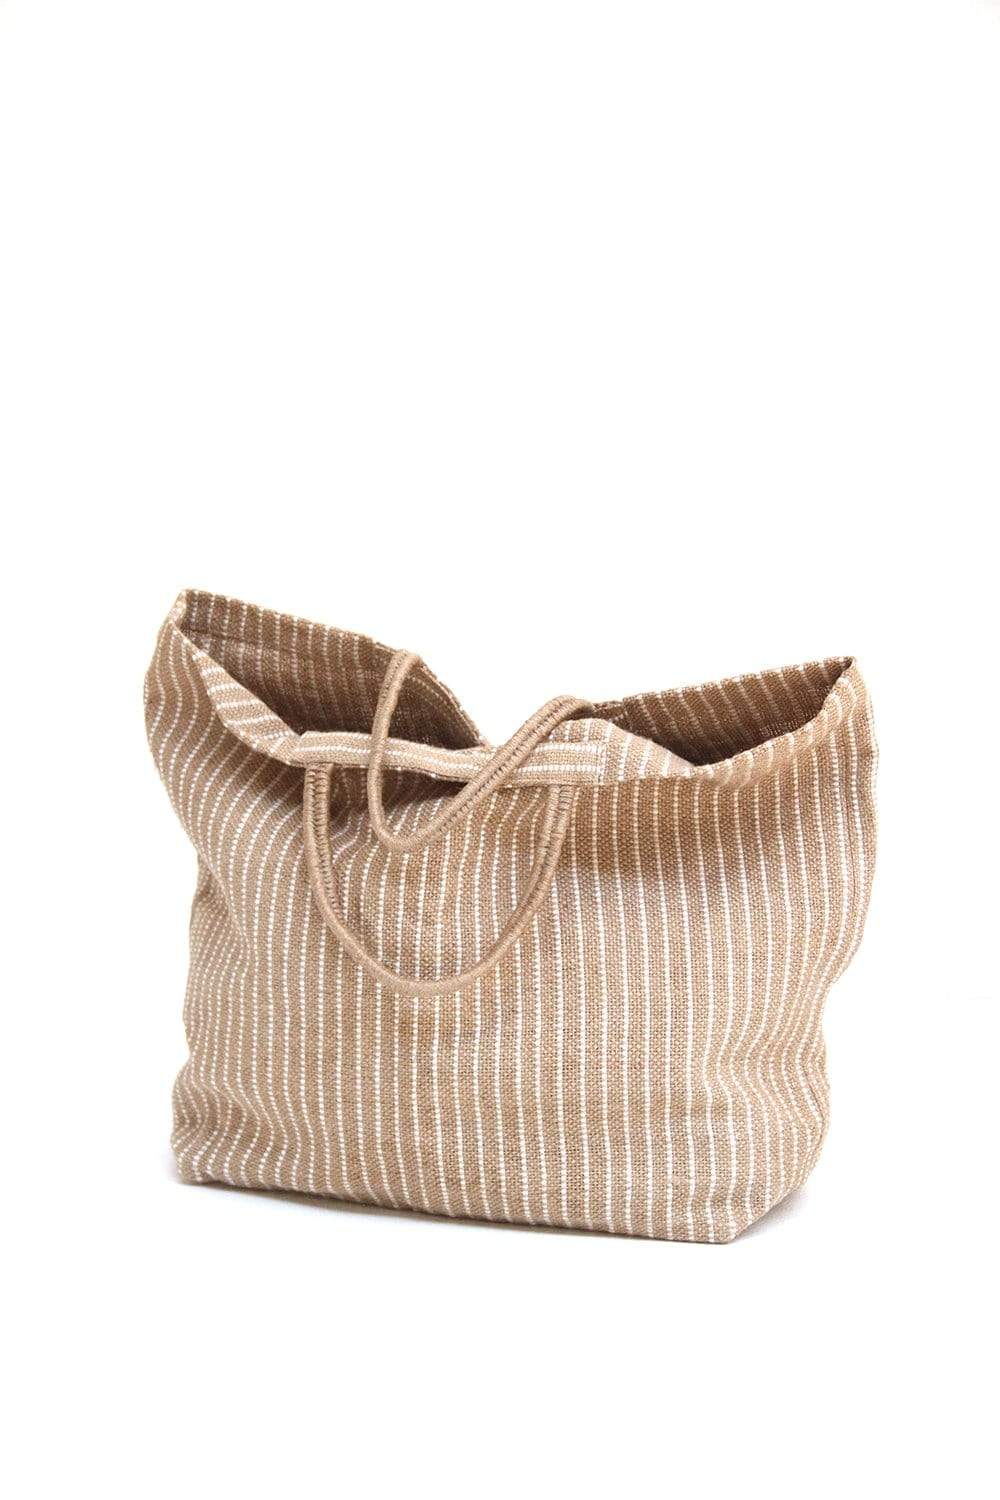 The Dharma Door Bags and Totes Sada Jumbo Tote